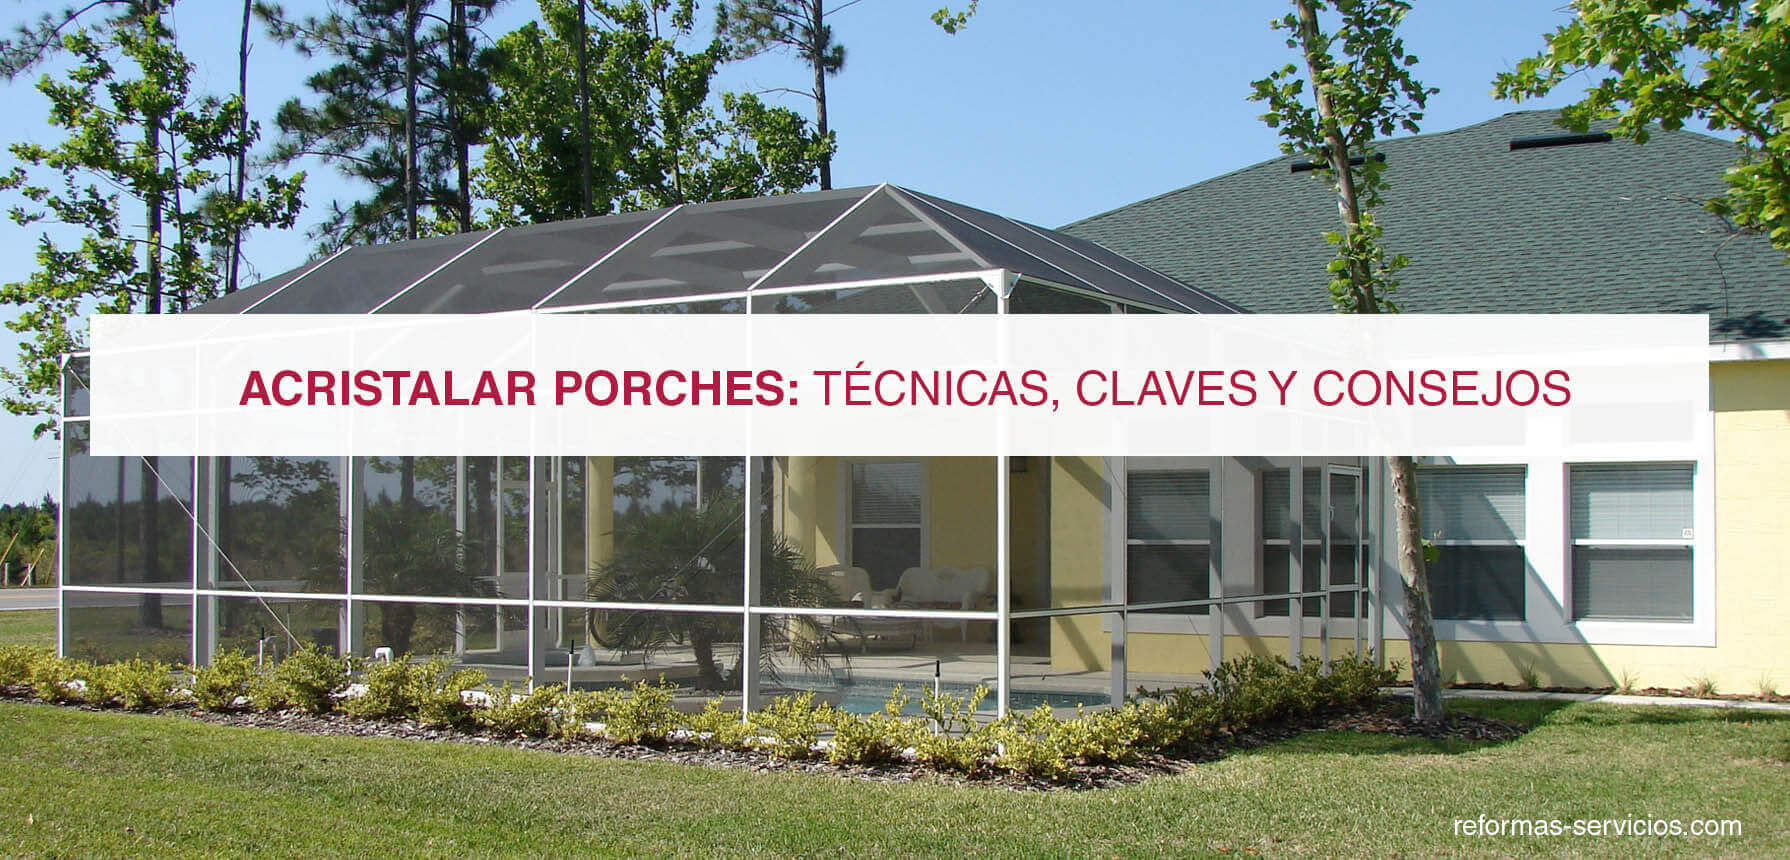 Acristalar porches